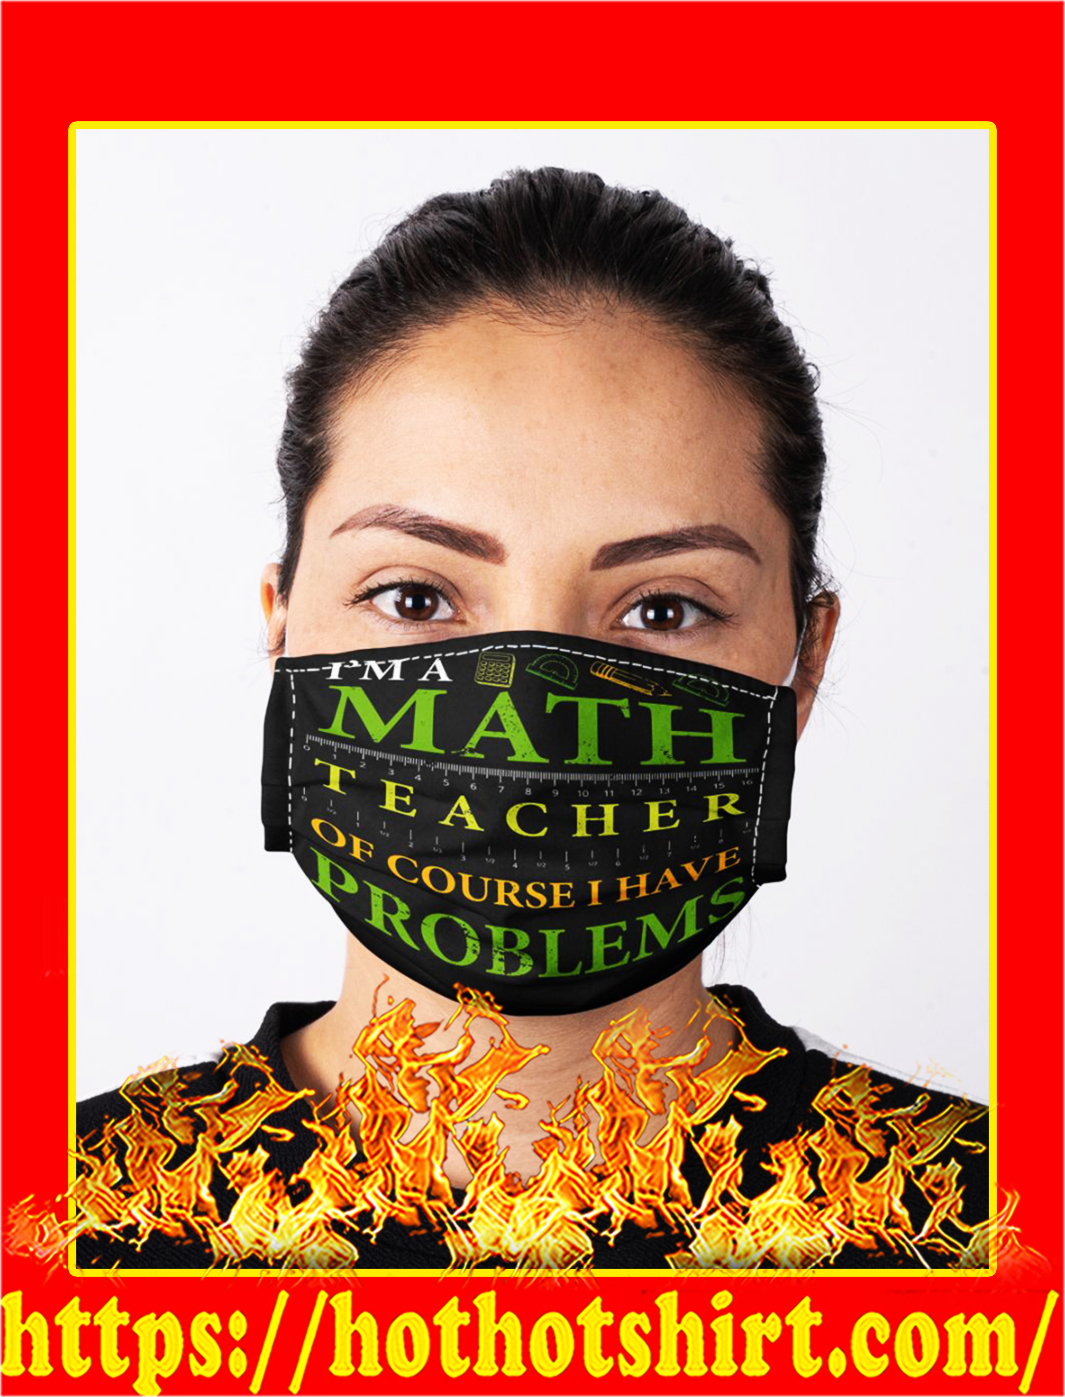 I'm a match teacher of course i have problems face mask- pic 1